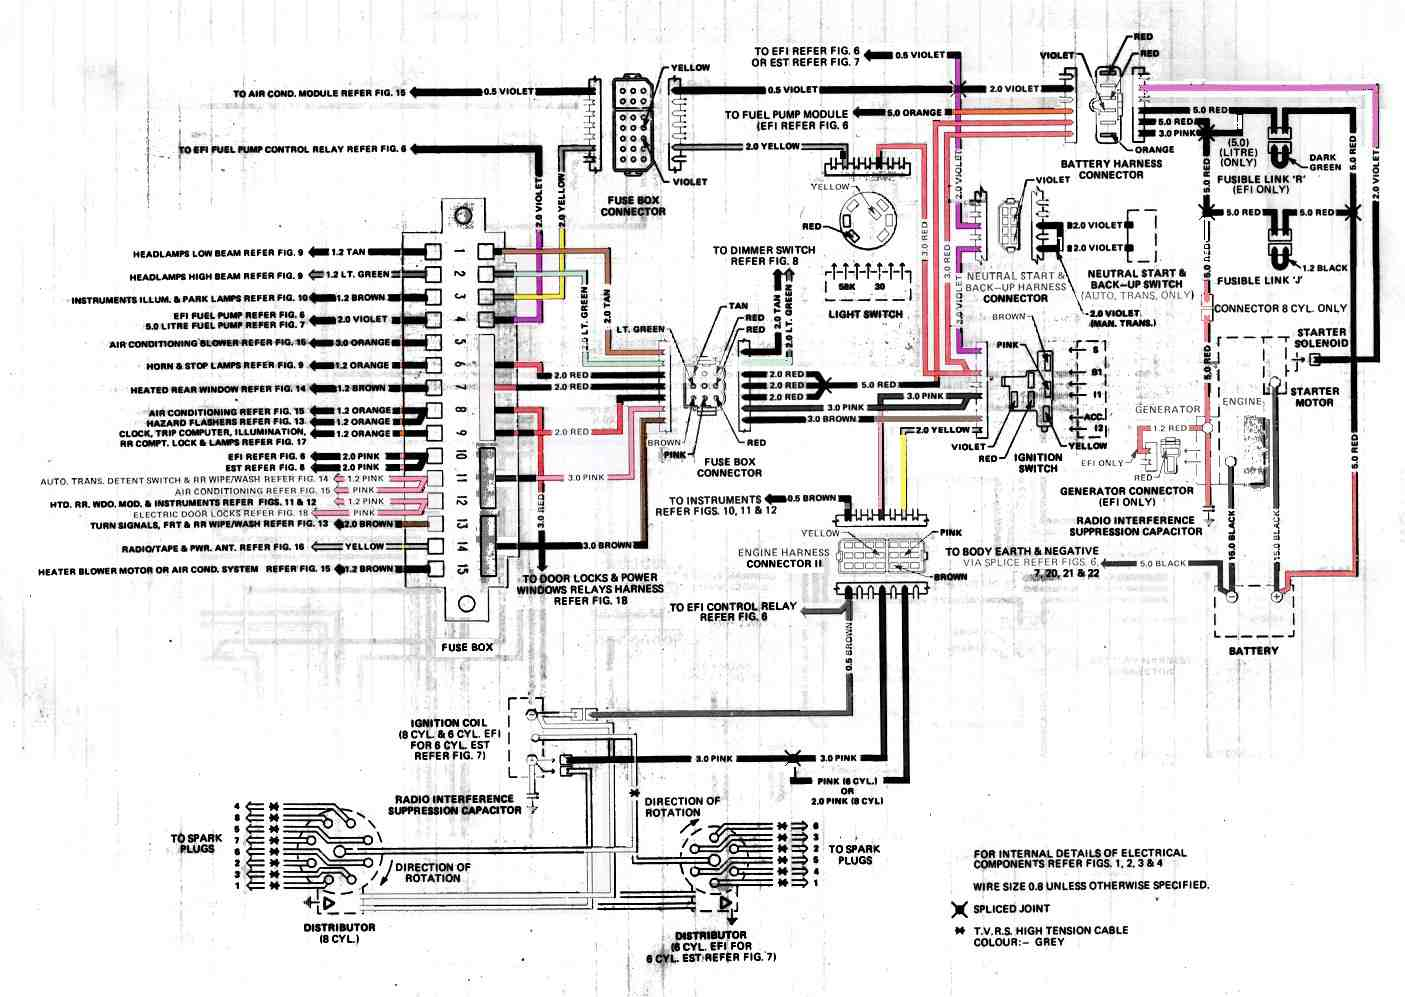 Amazing Tvs Apache Wiring Diagram Model - Wiring Diagram Ideas ...